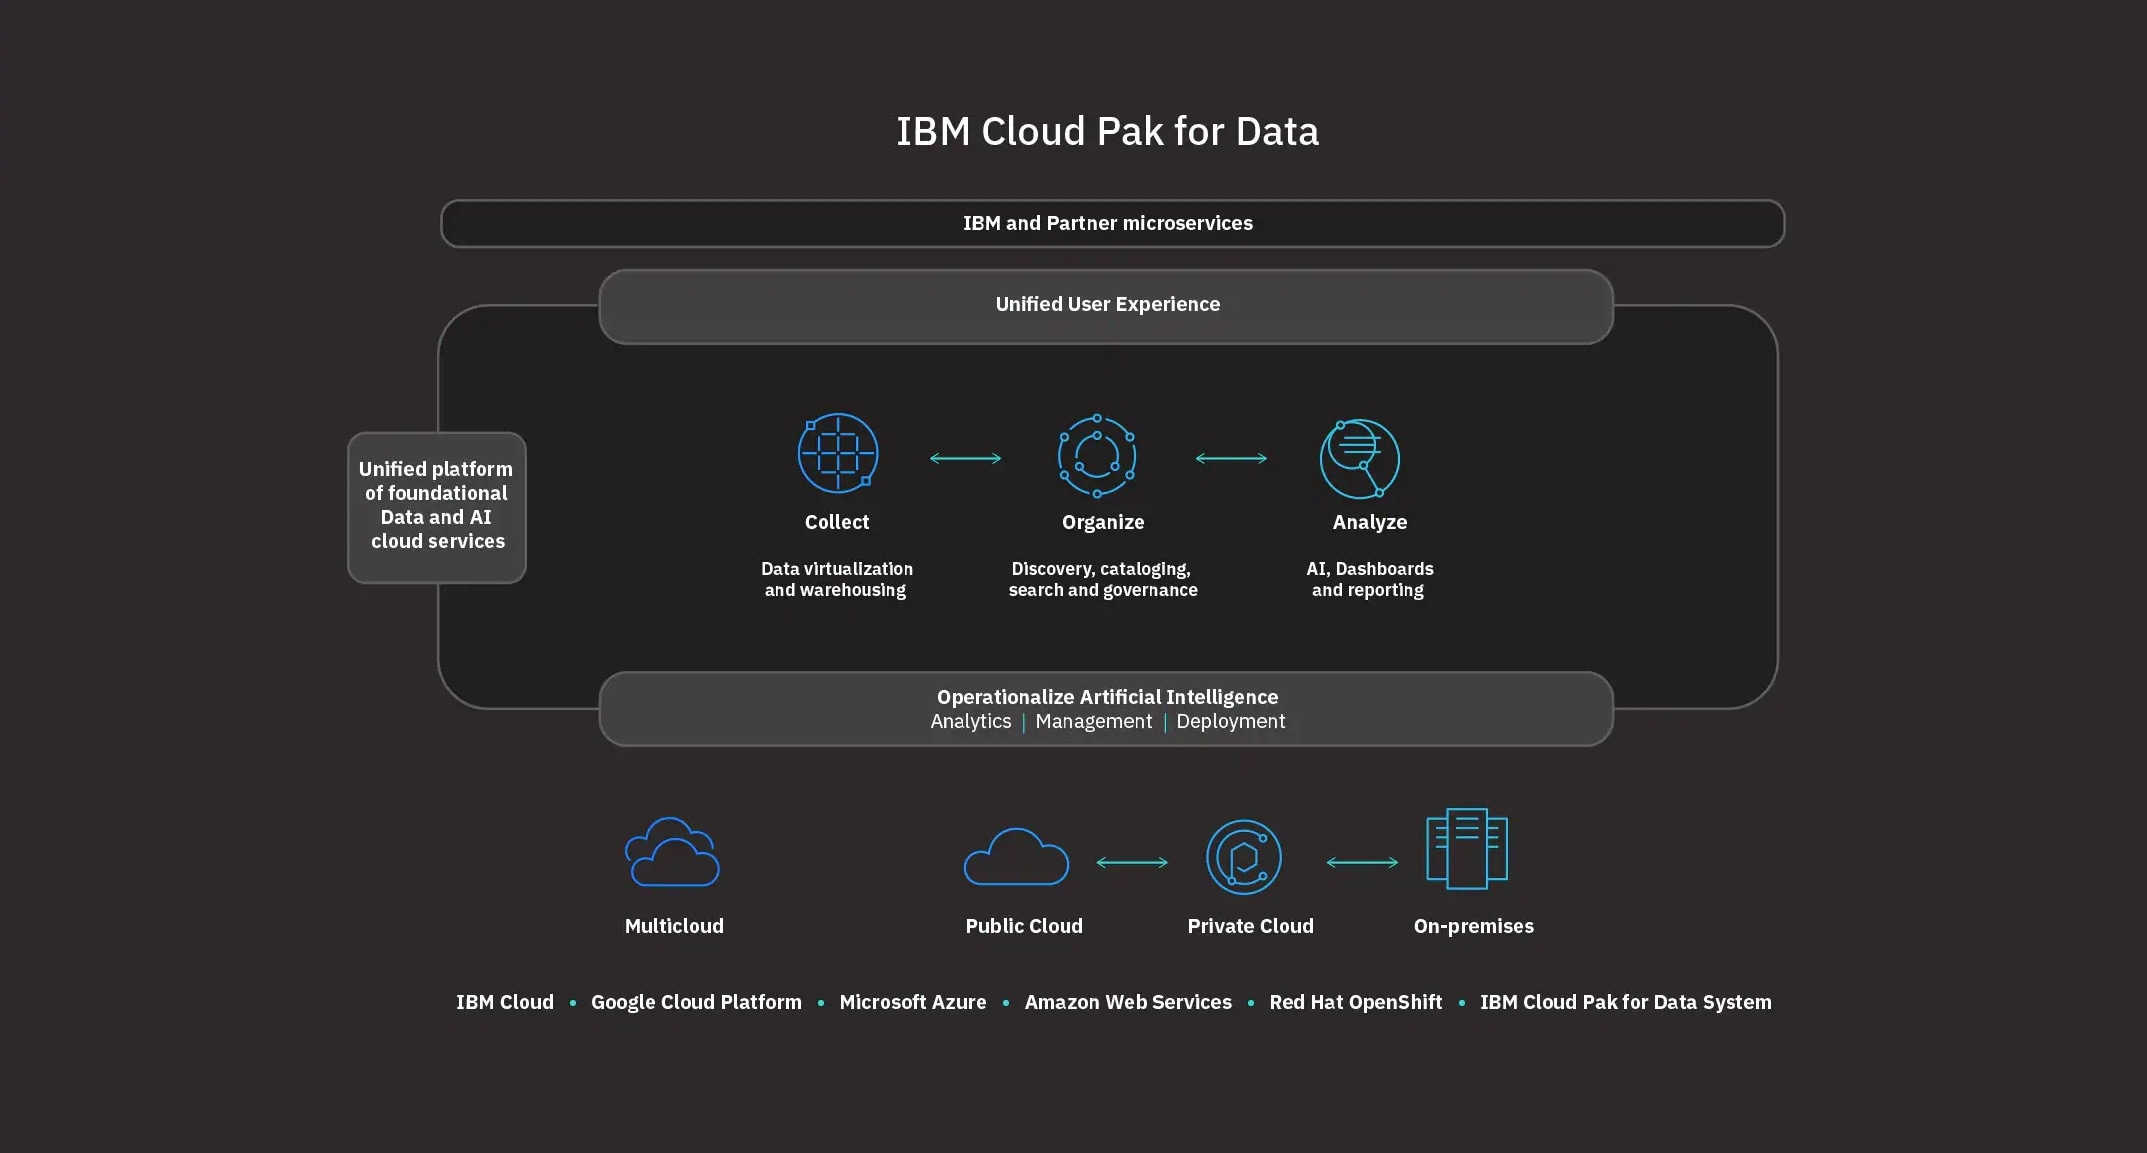 Produkttour zu IBM Cloud Pak for Data